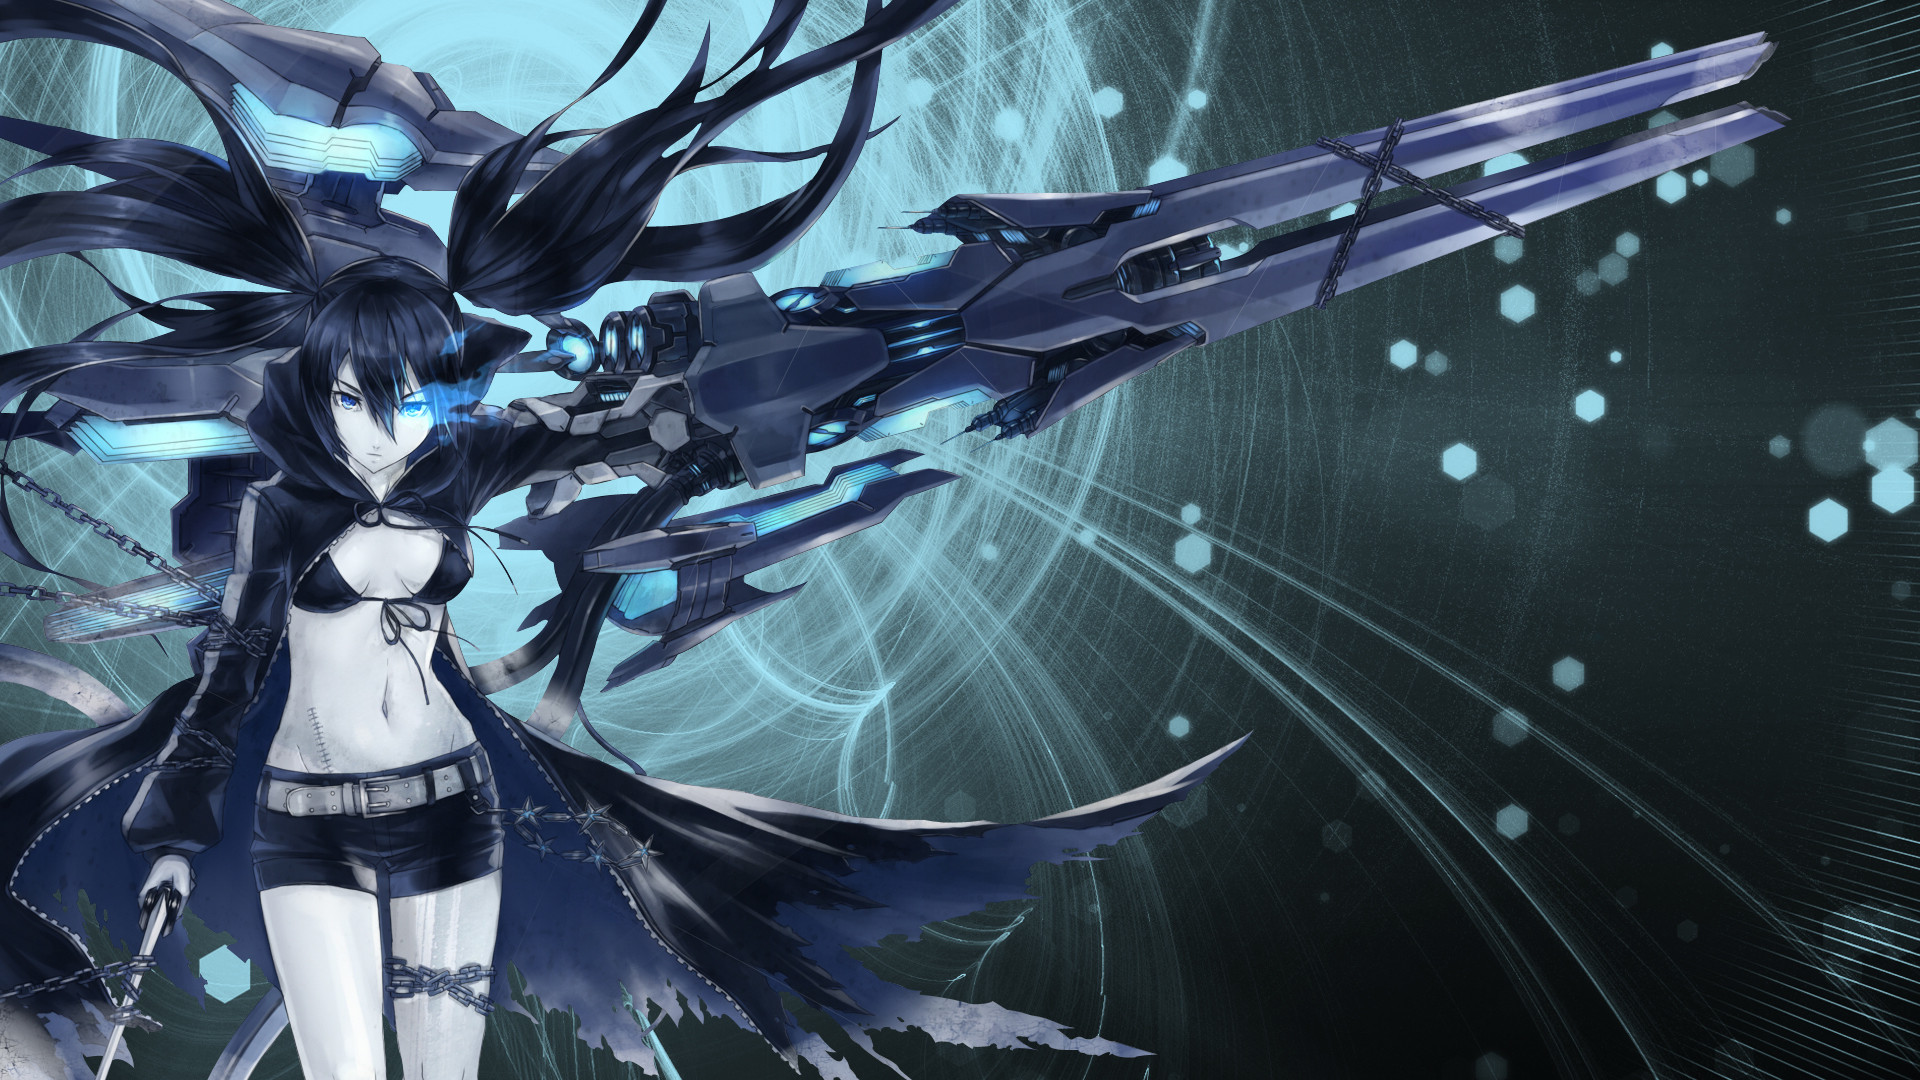 Res: 1920x1080, Black Rock Shooter Wallpapers